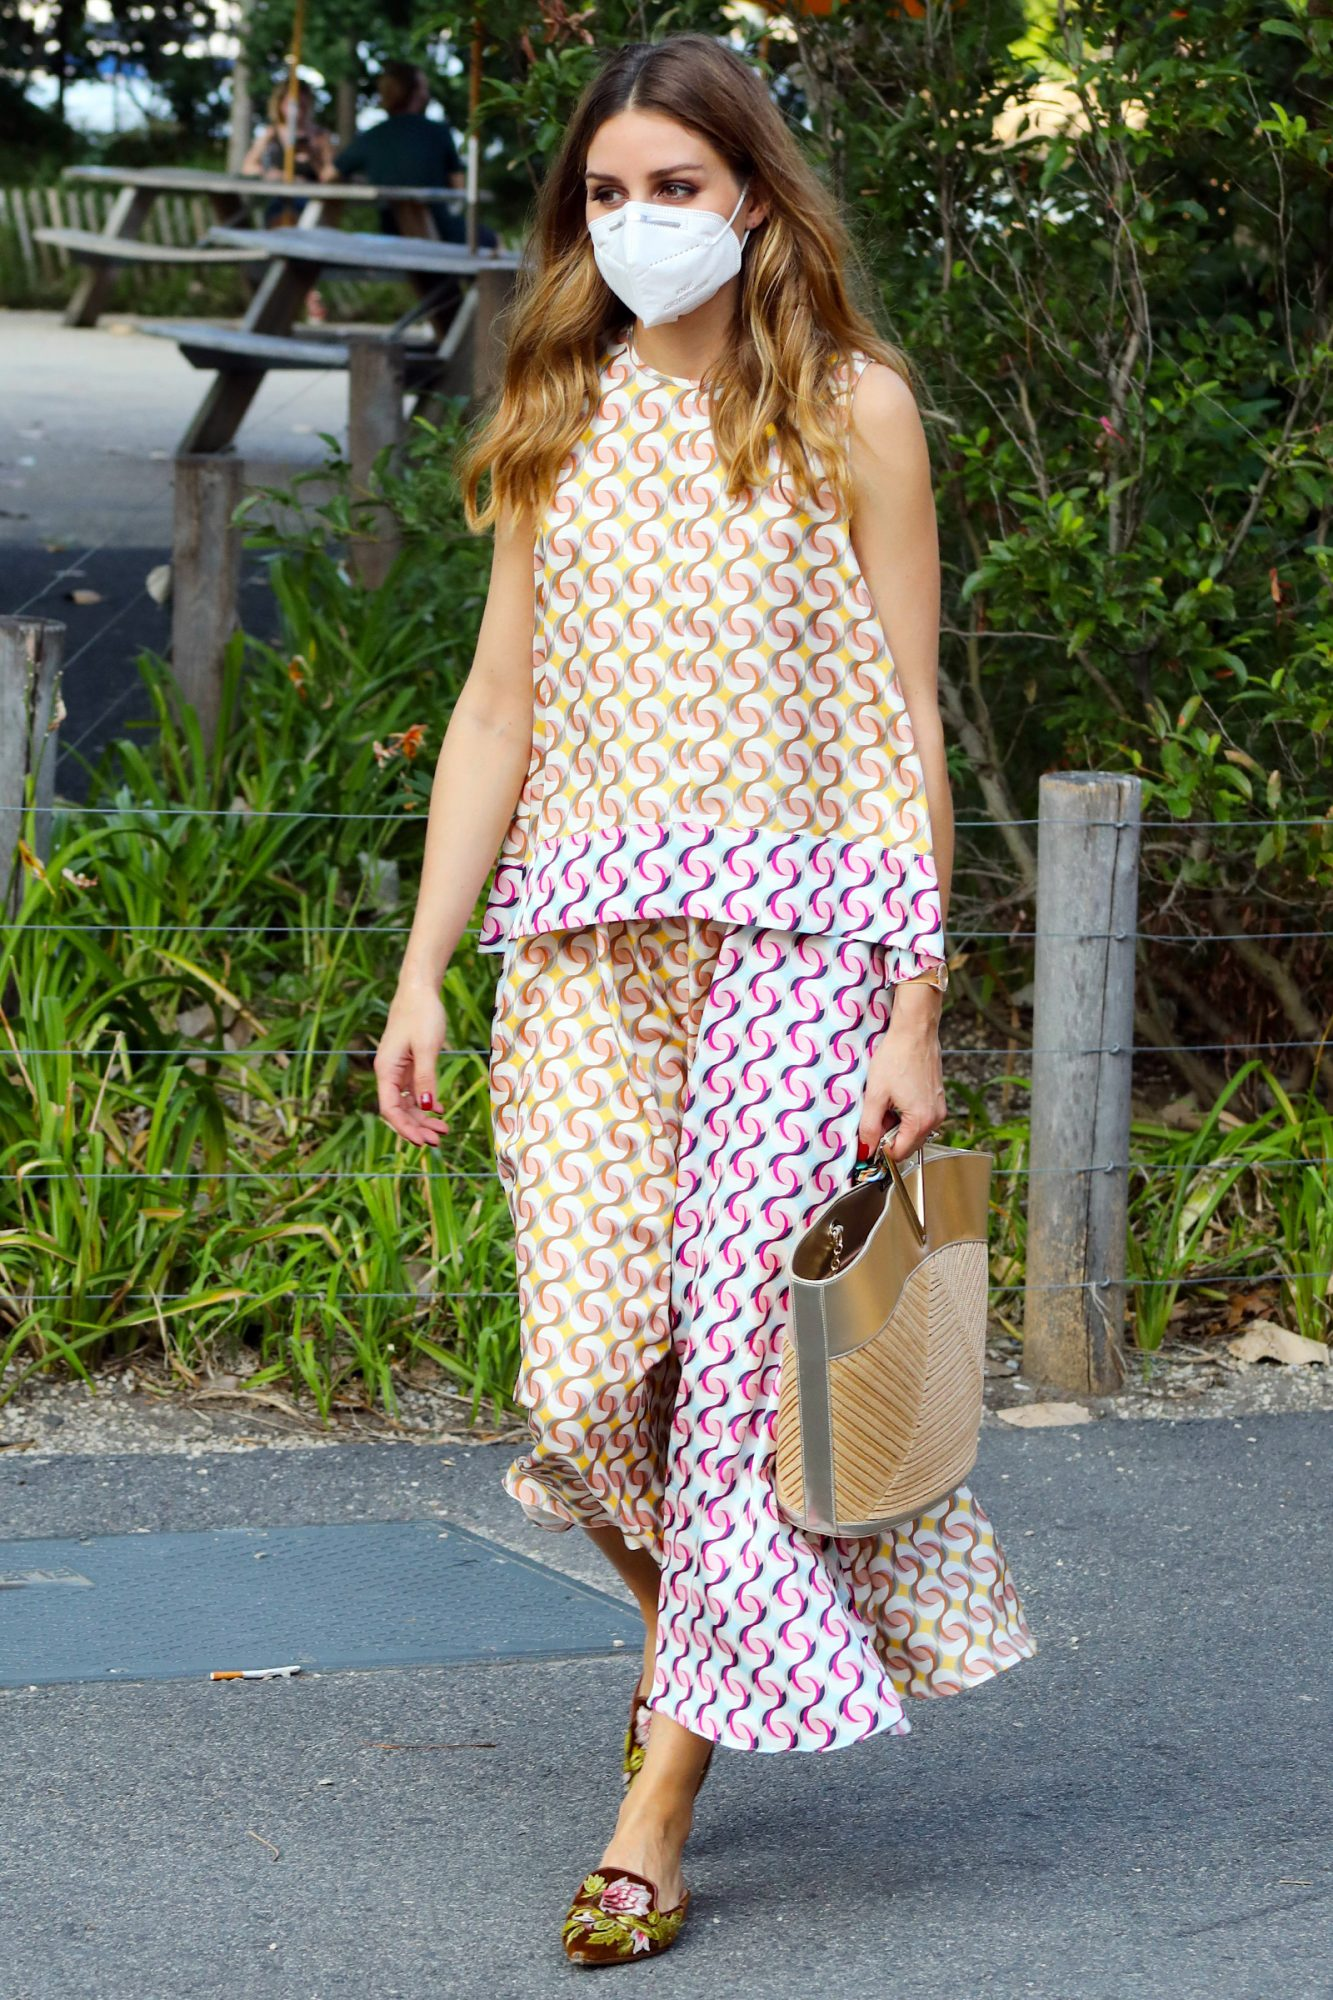 Olivia Palermo is seen on August 11, 2020 in New York City